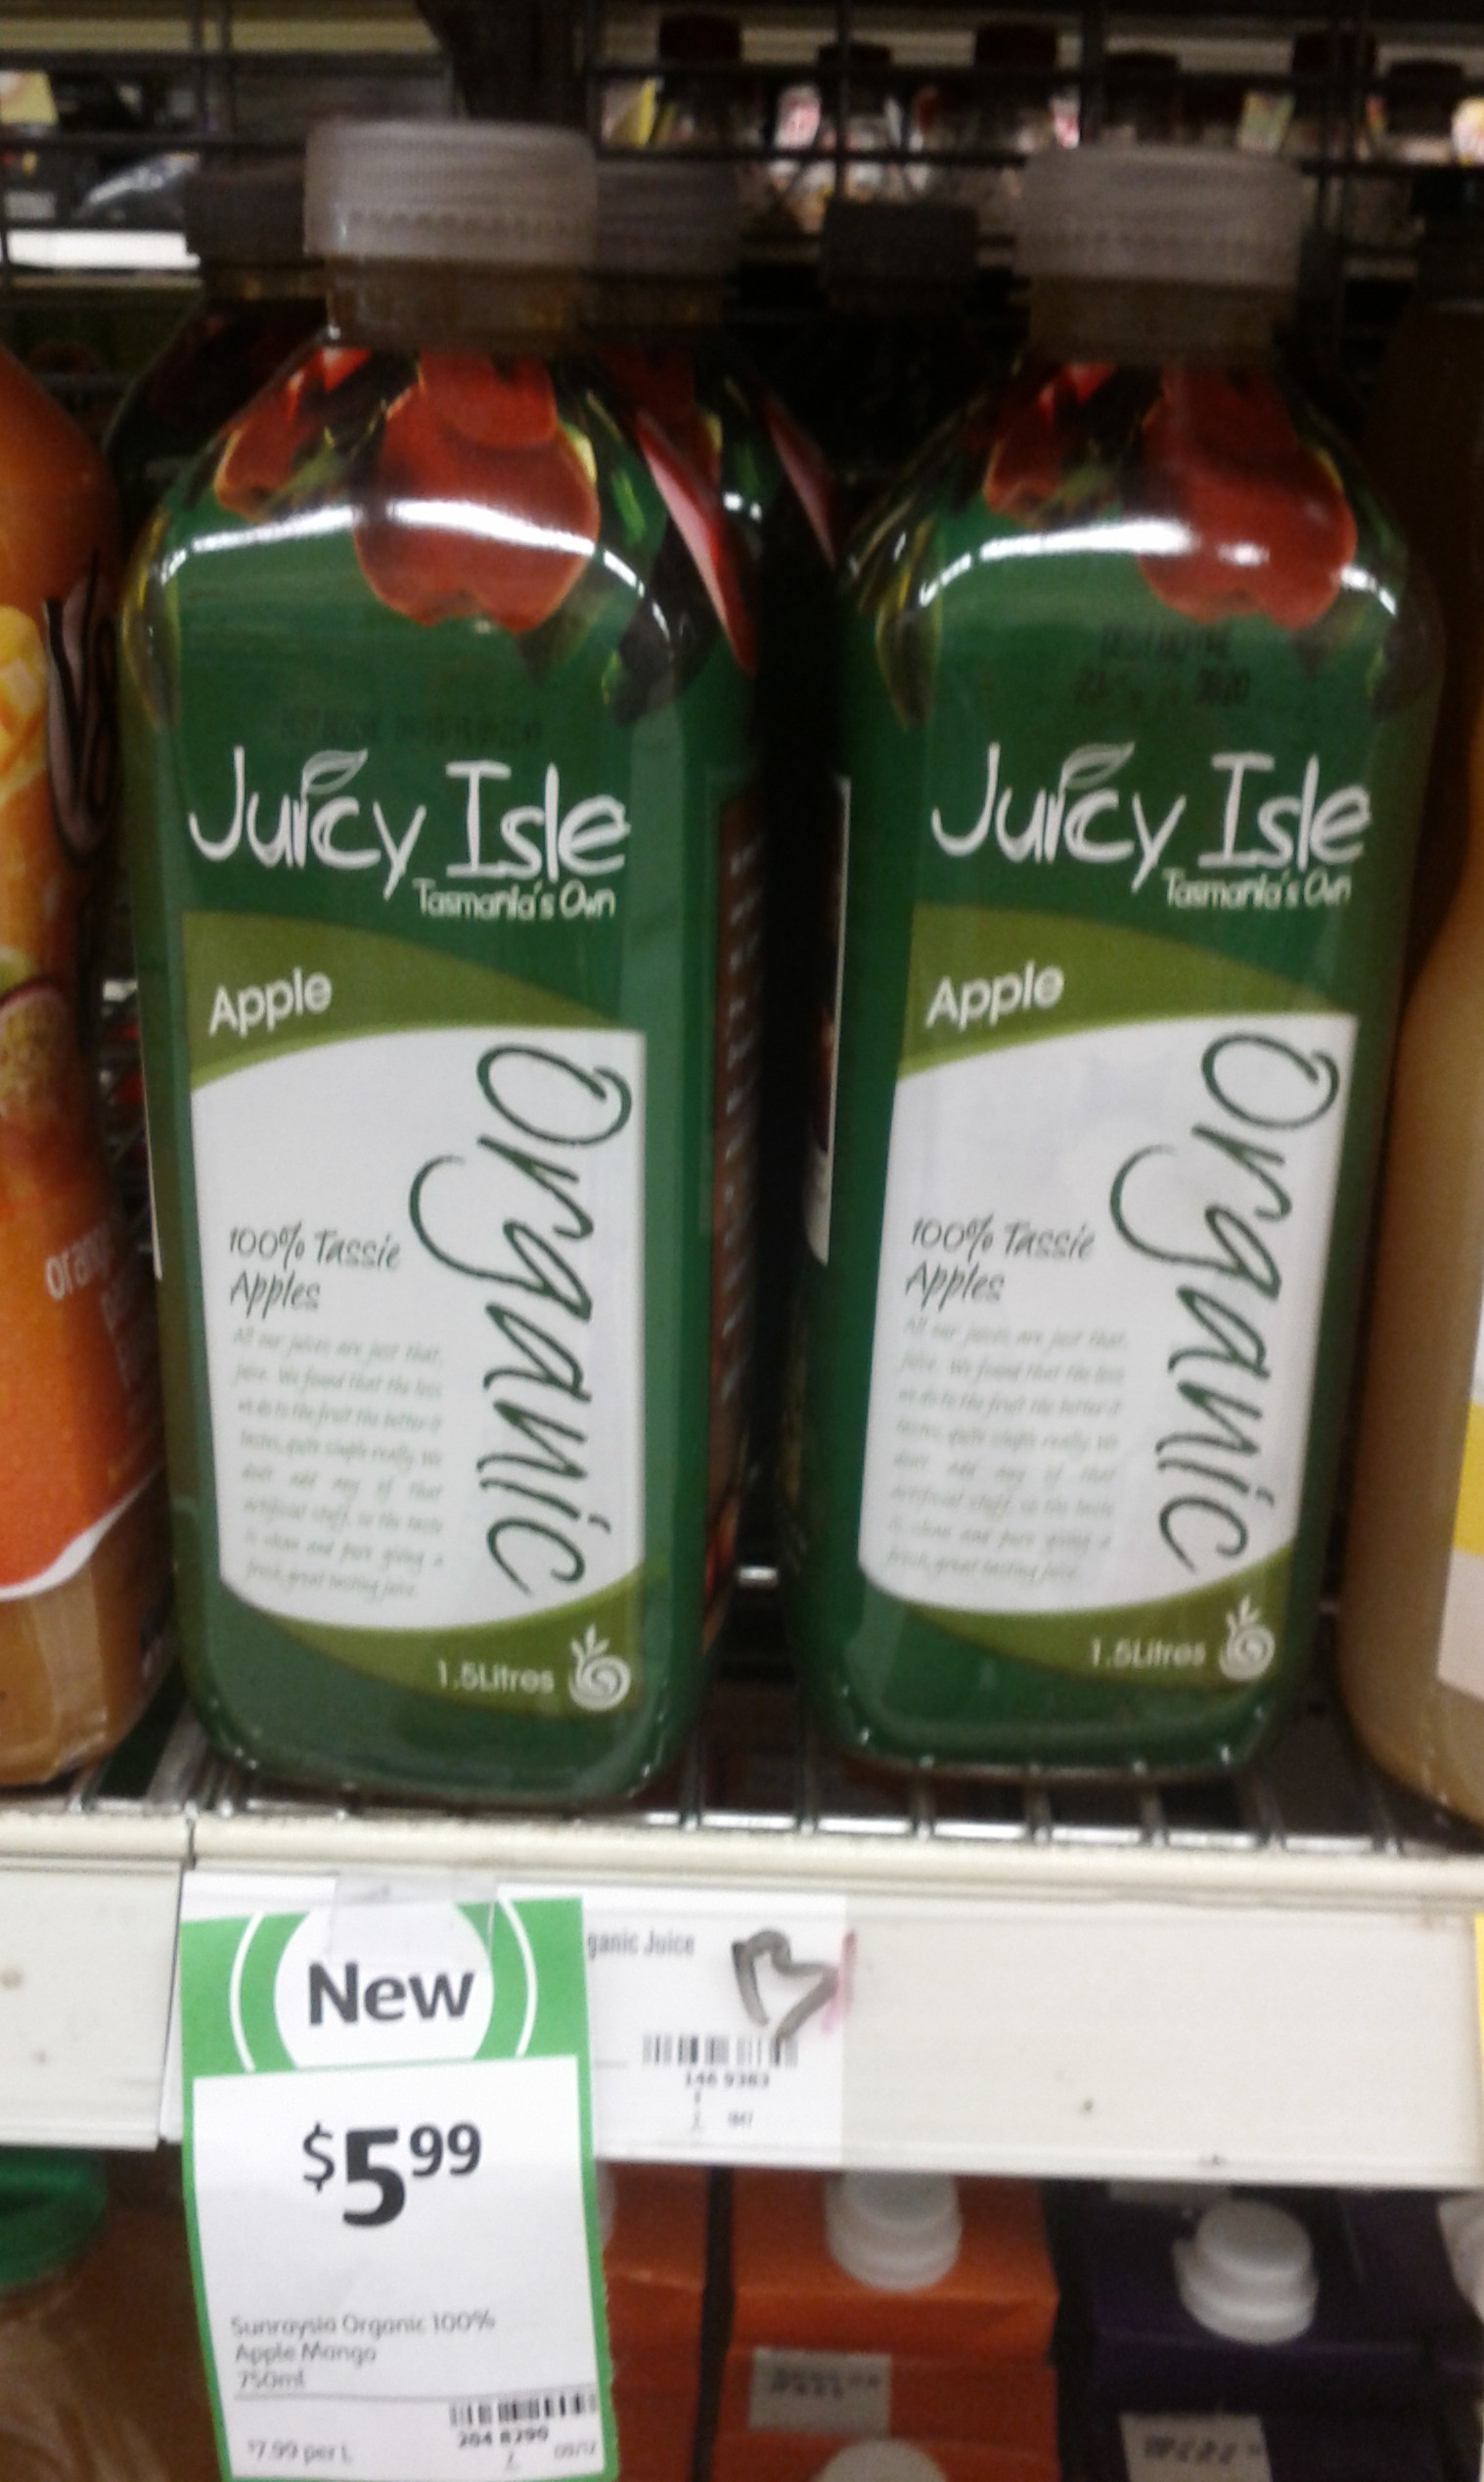 Juicy Isle 1.5L Apple